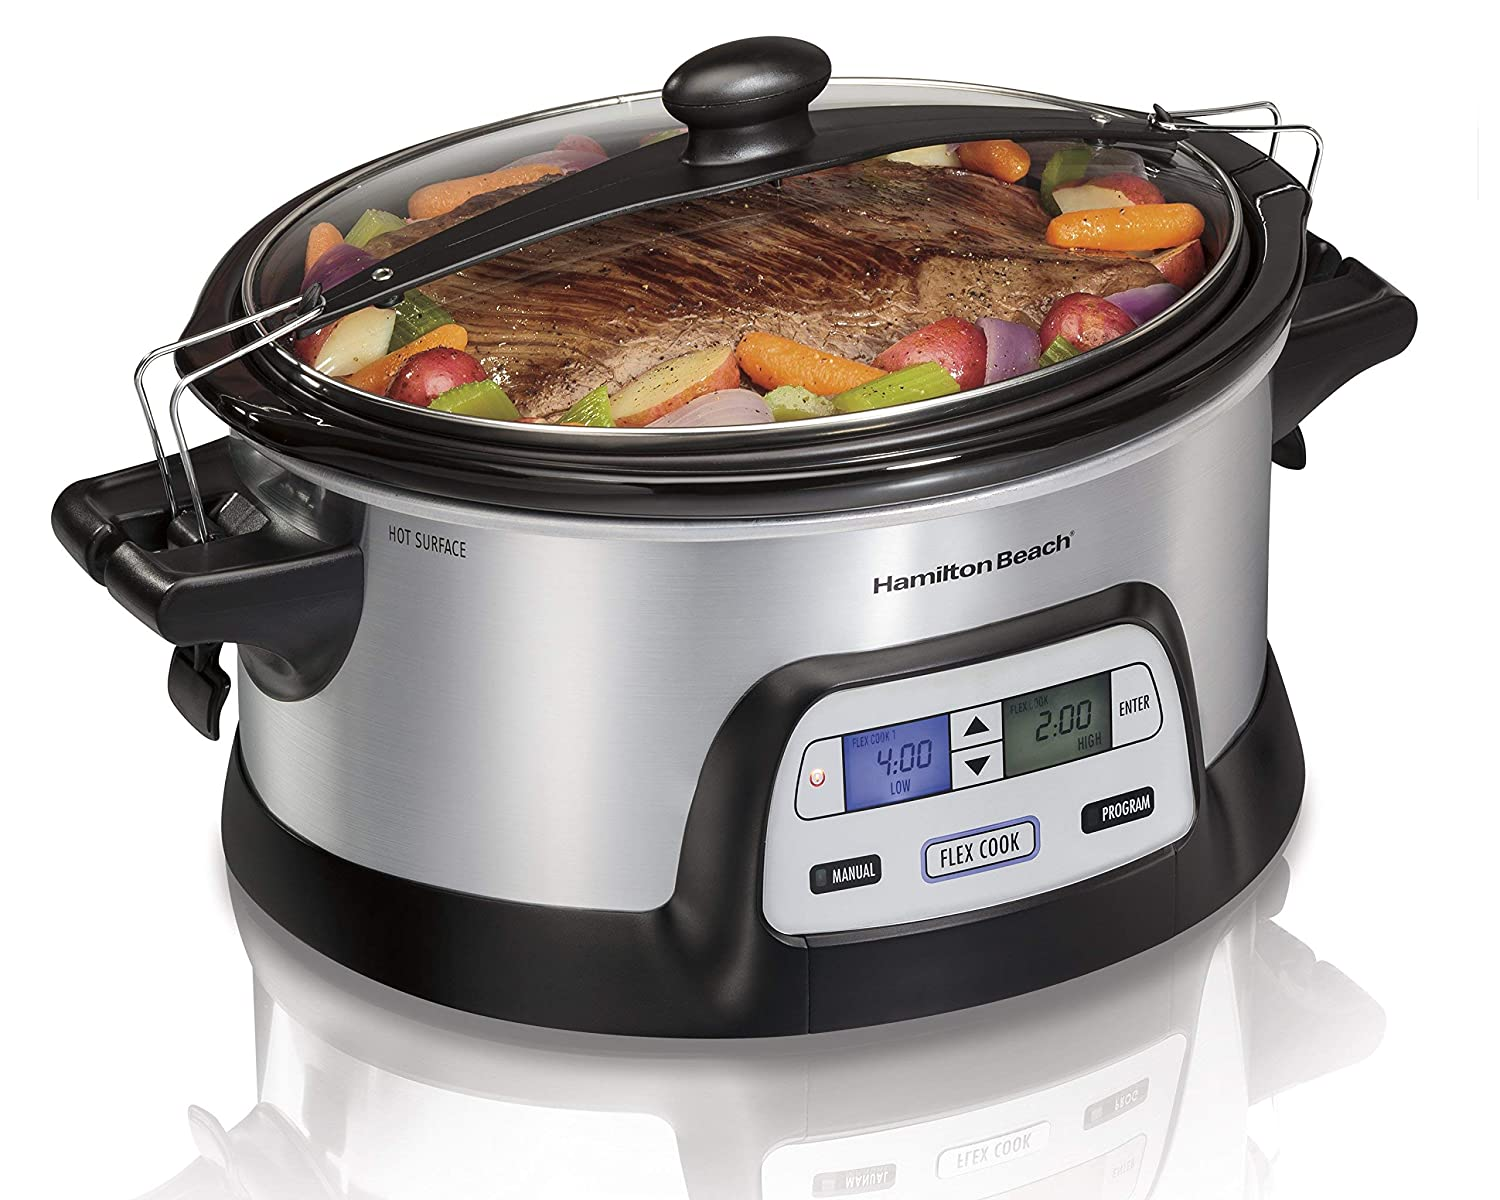 Hamilton Beach 33861 Programmable Slow Cooker, 6 Quart, Dual Digital Timer, Stainless Steel (Renewed)